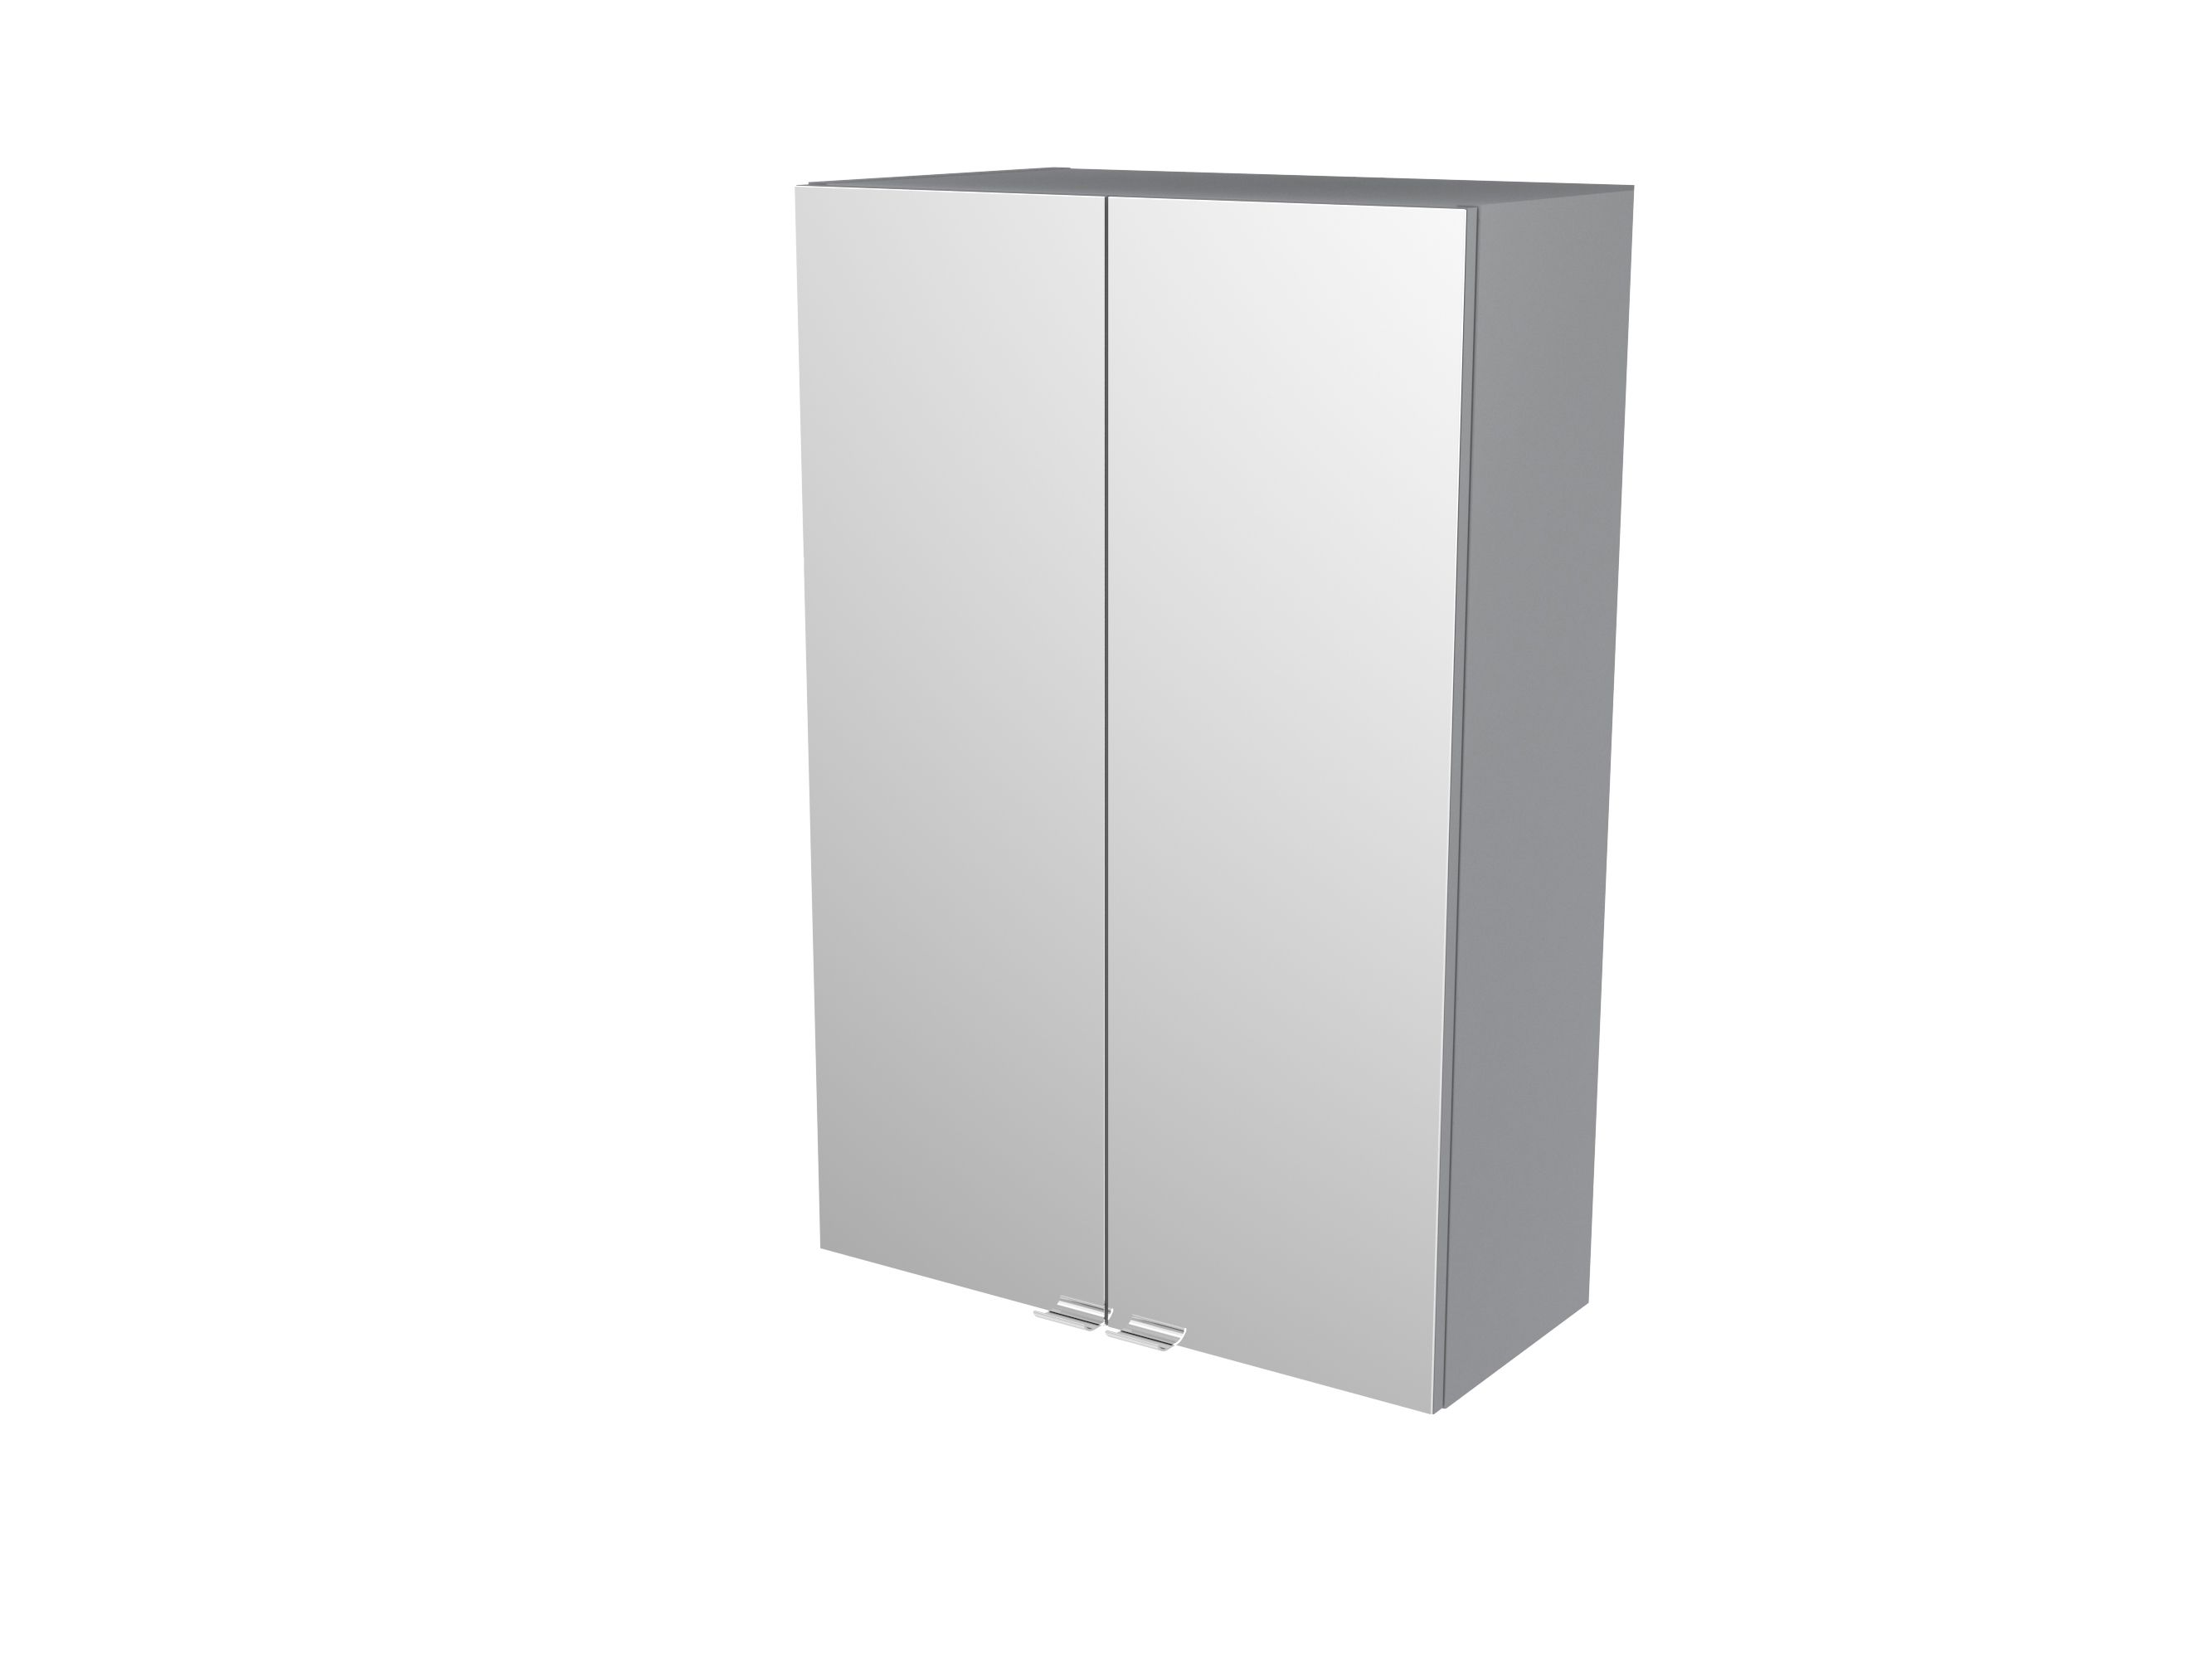 Cooke & Lewis Imandra Gloss Grey Deep Mirrored Wall Cabinet, (w)600mm